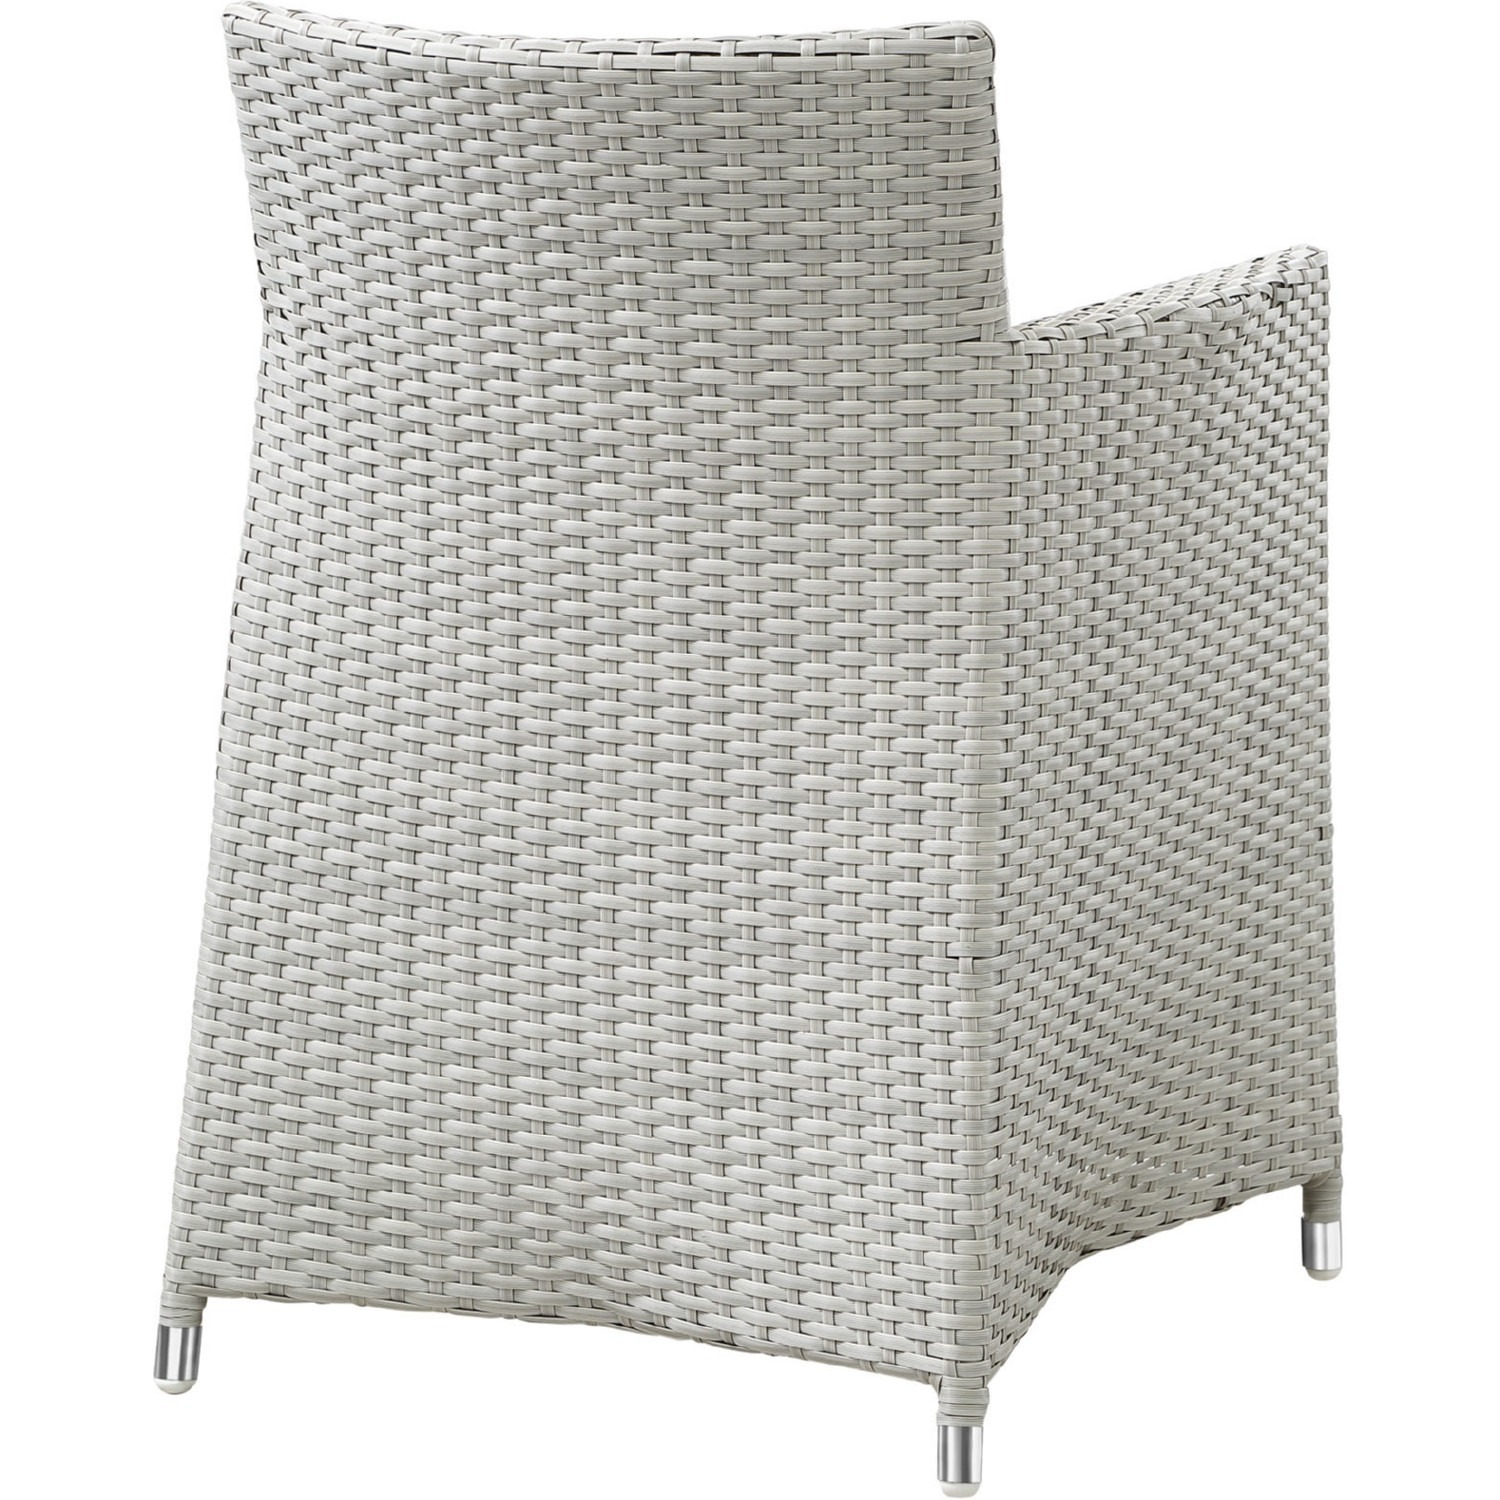 Modern 9-Piece Dining Set In Gray Rattan Weave - image-3